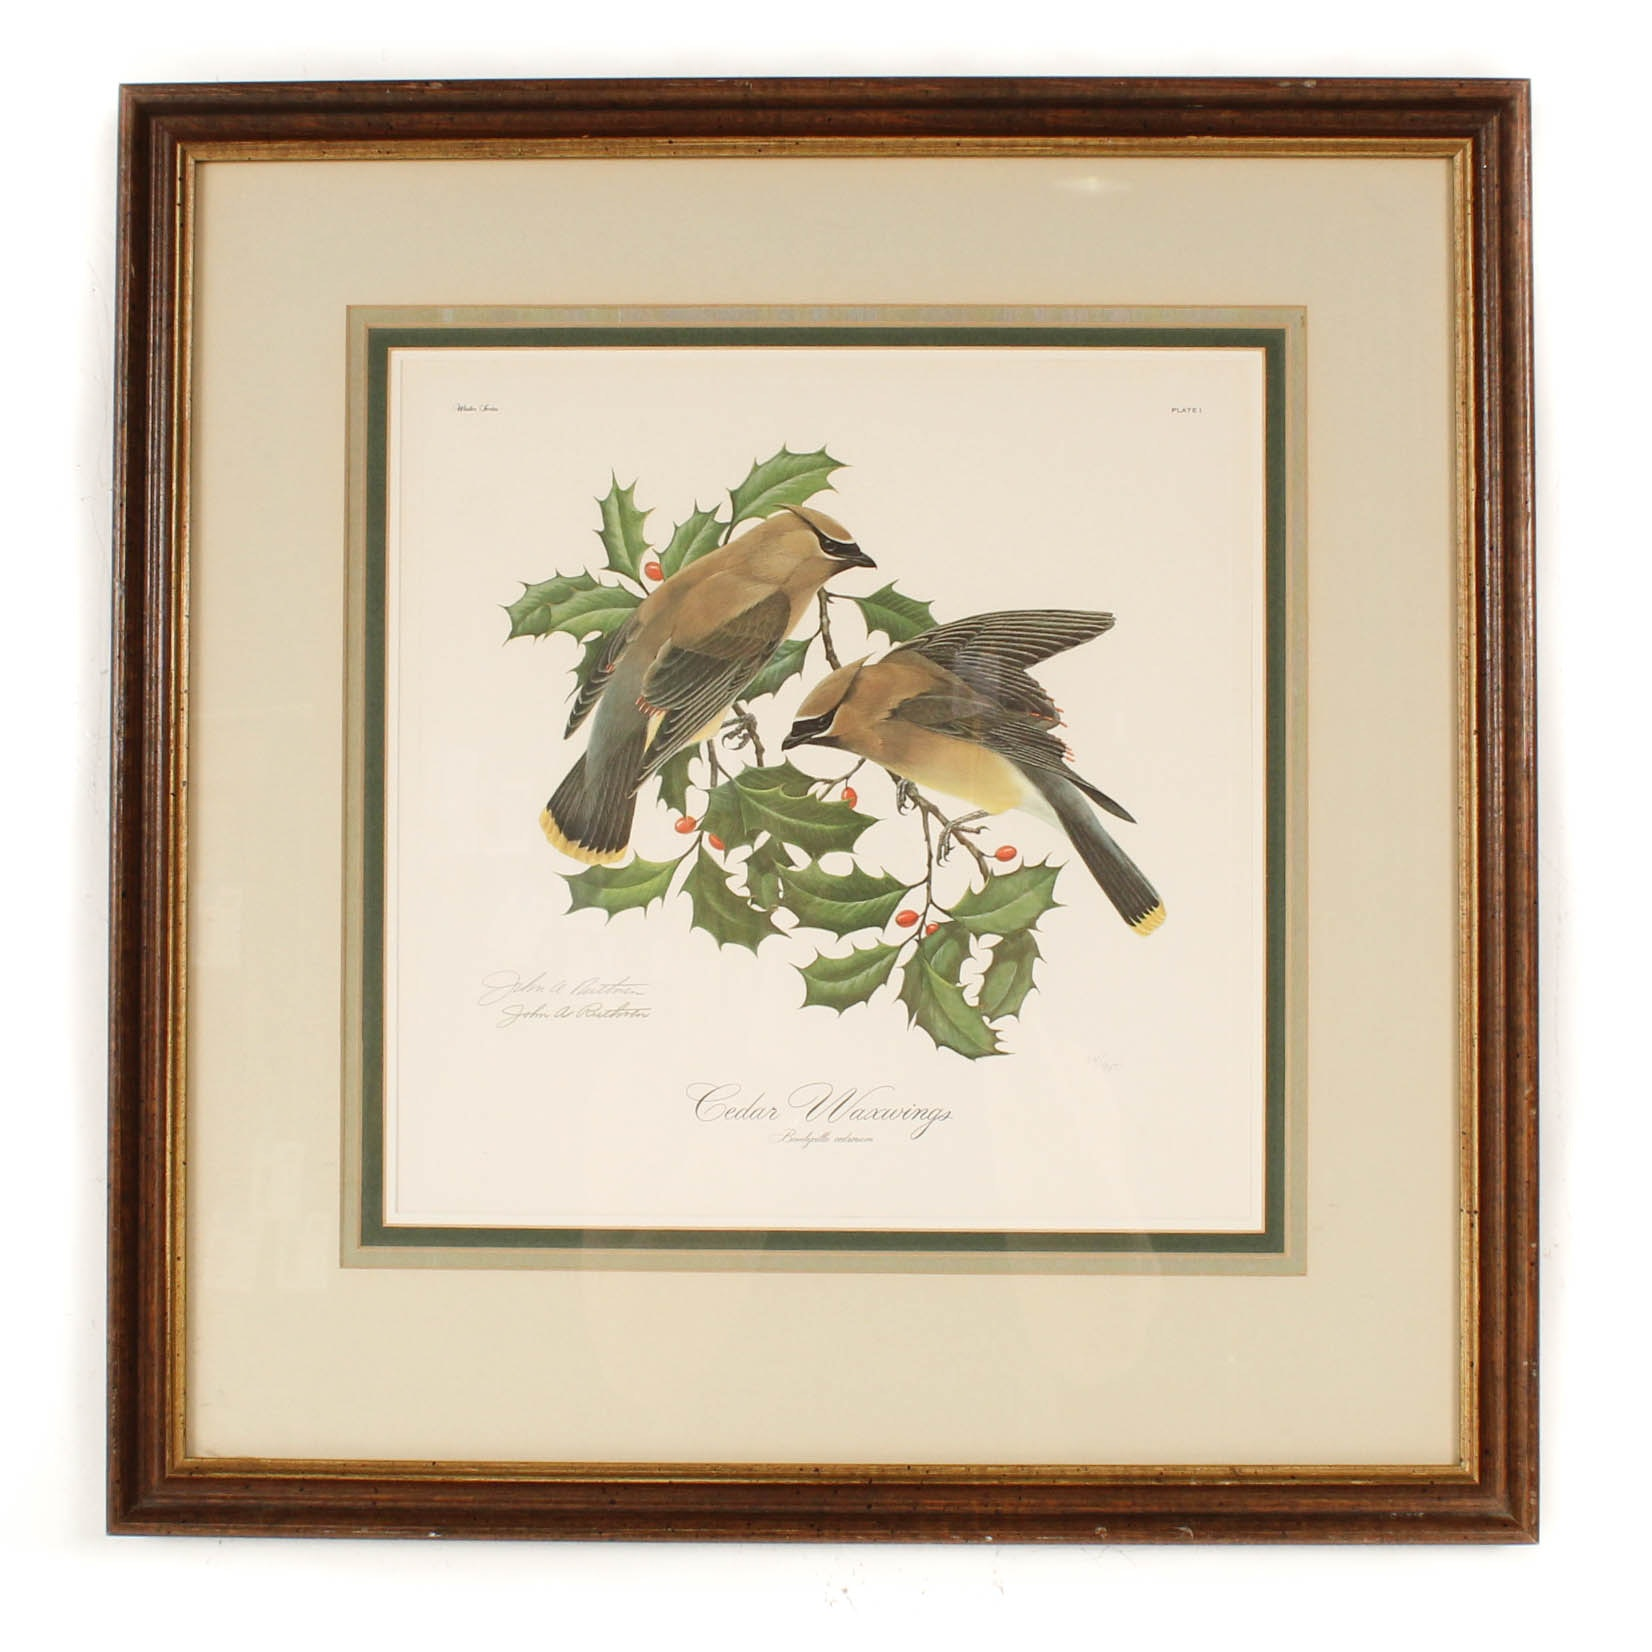 """John Ruthven Signed Limited Edition Offset Lithograph """"Cedar Waxwings"""""""